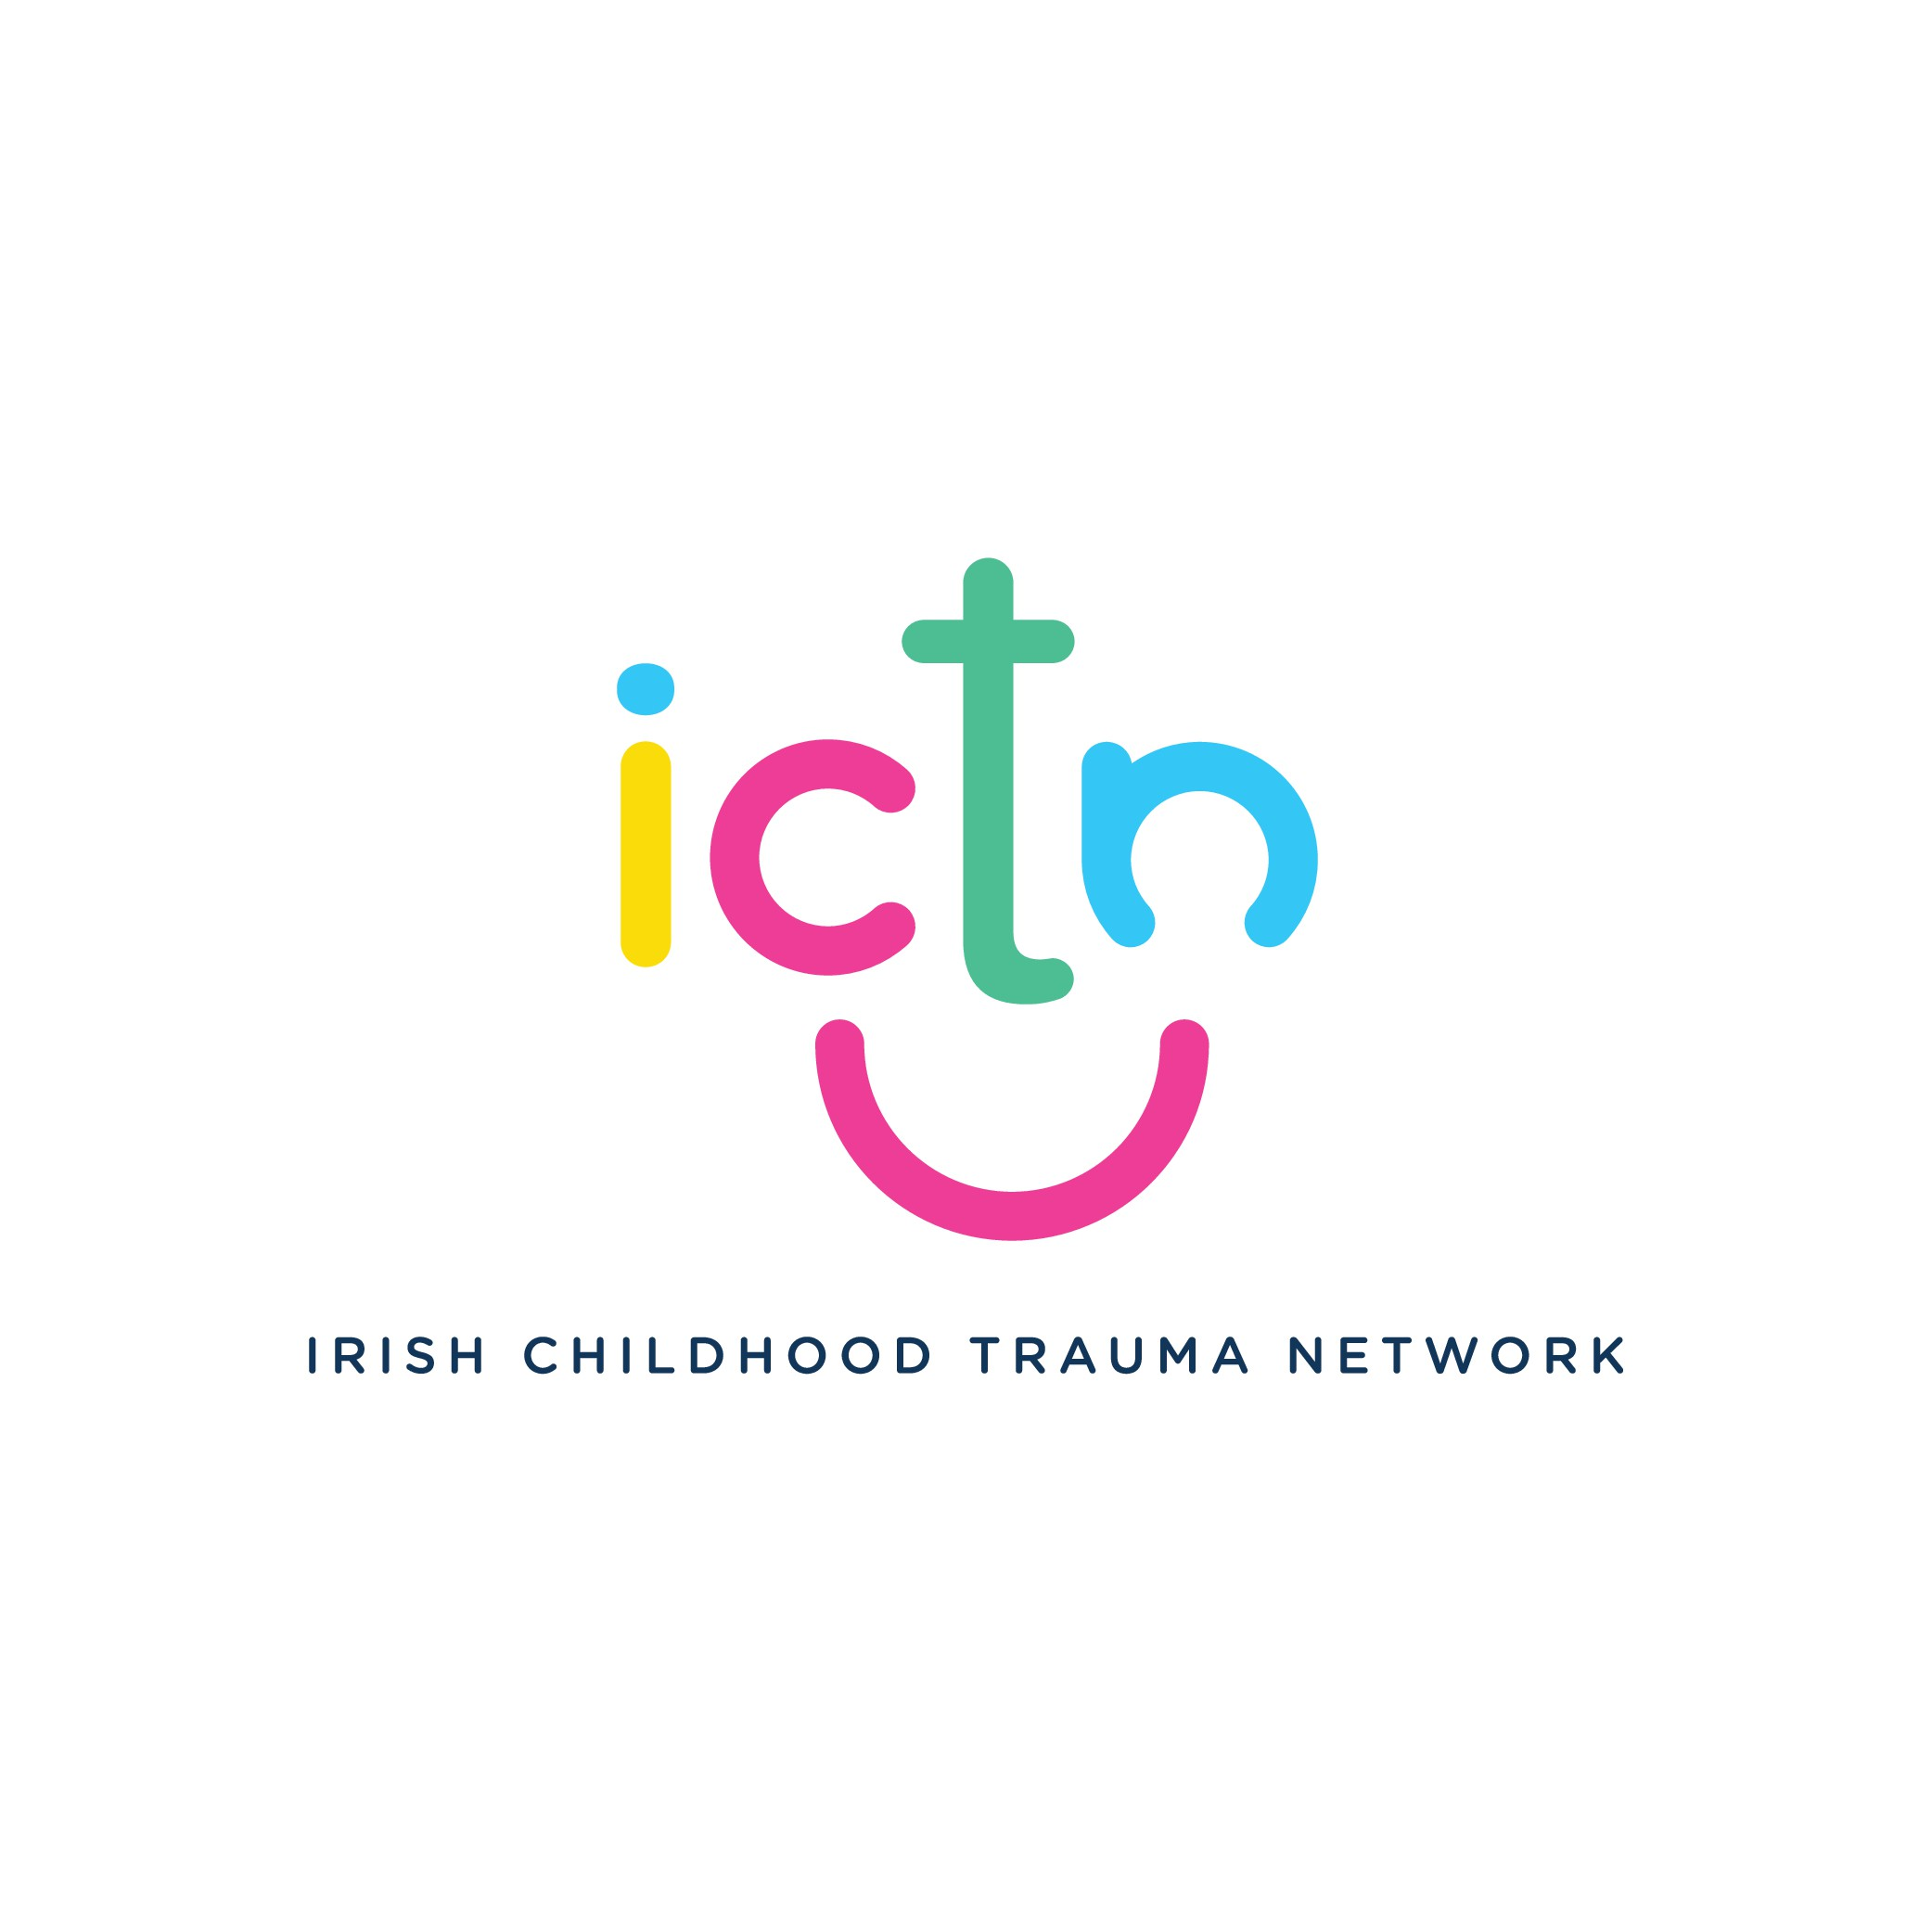 Irish Childhood Trauma Network - sensitive and supportive but childlike also